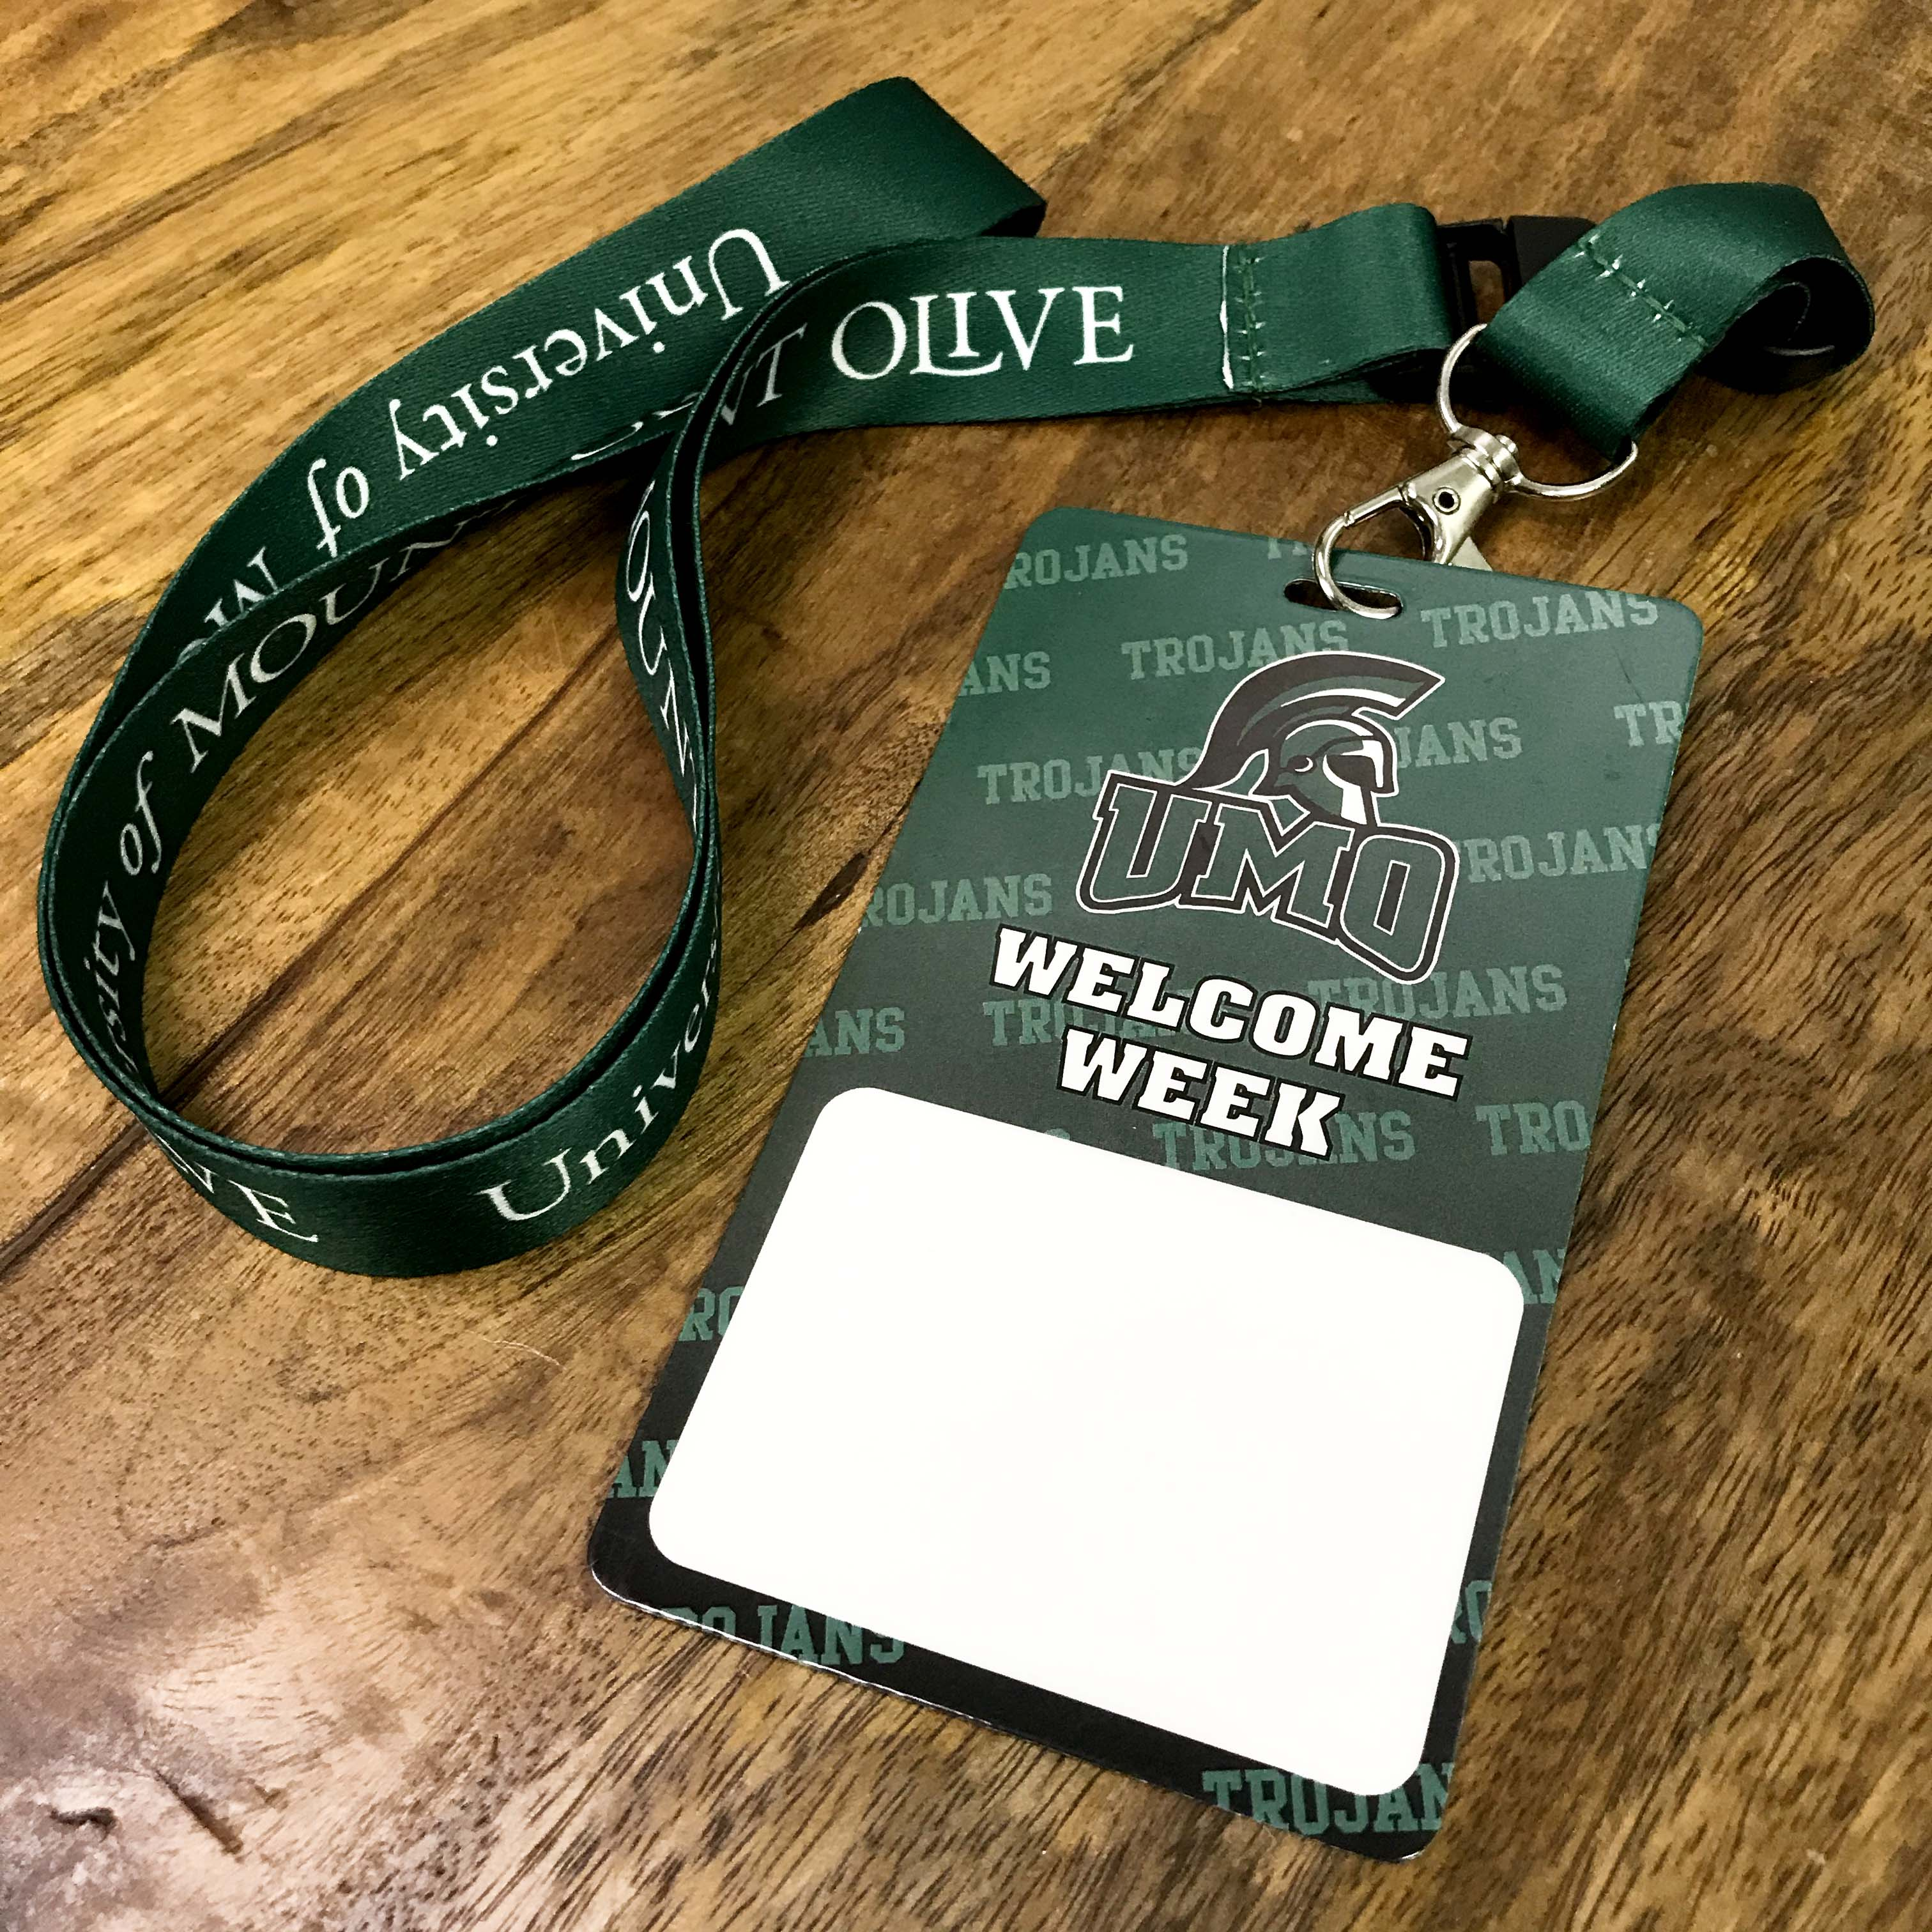 UMO Welcome Week badge and lanyard.